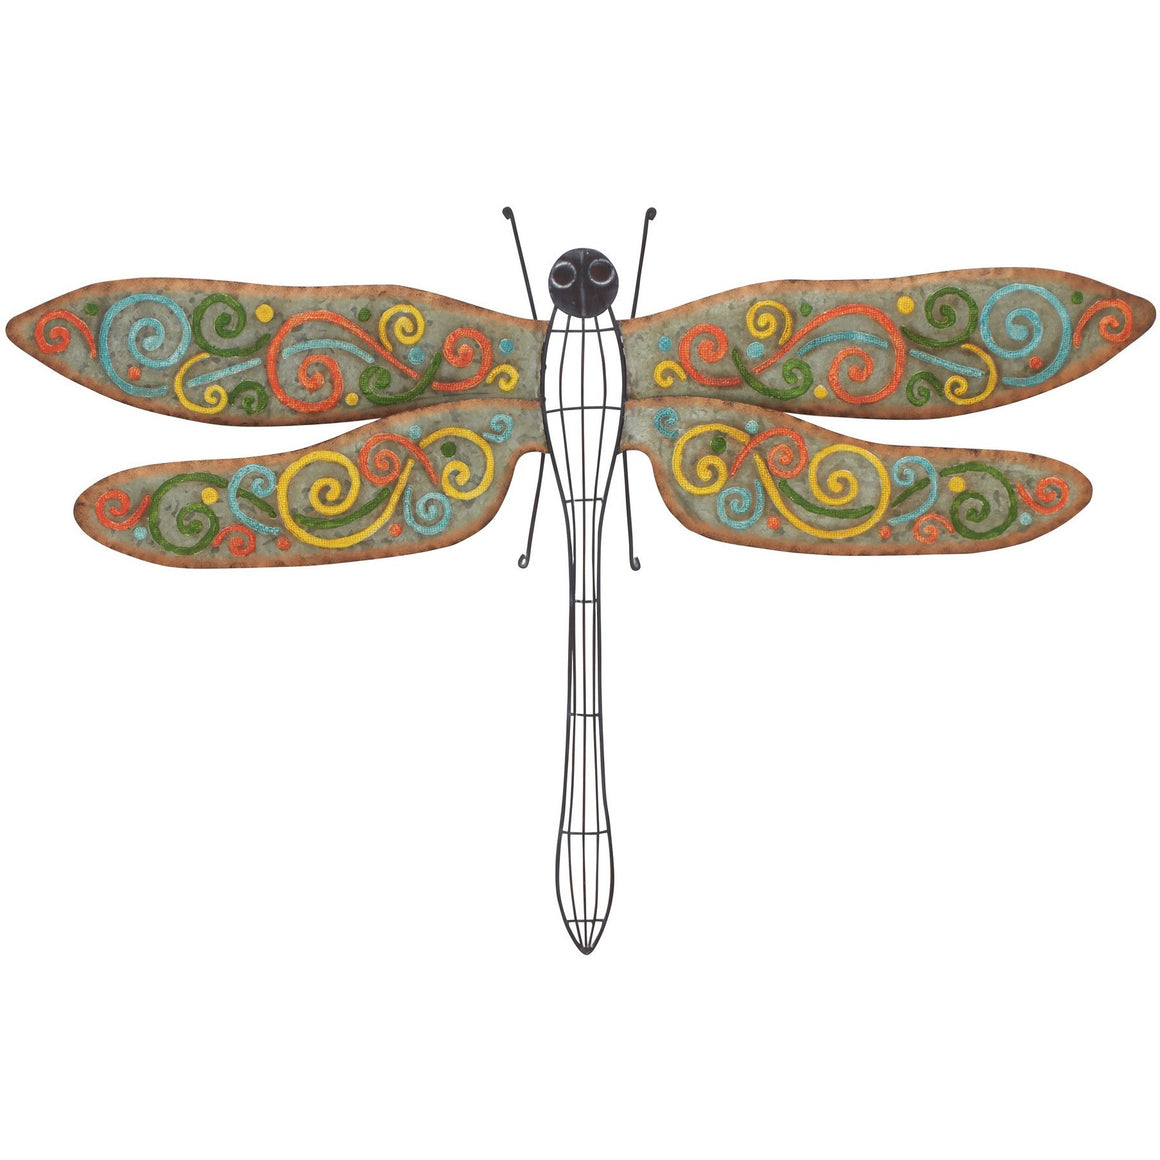 Benzara 56583 Colorful Metal Wall Dragonfly Art